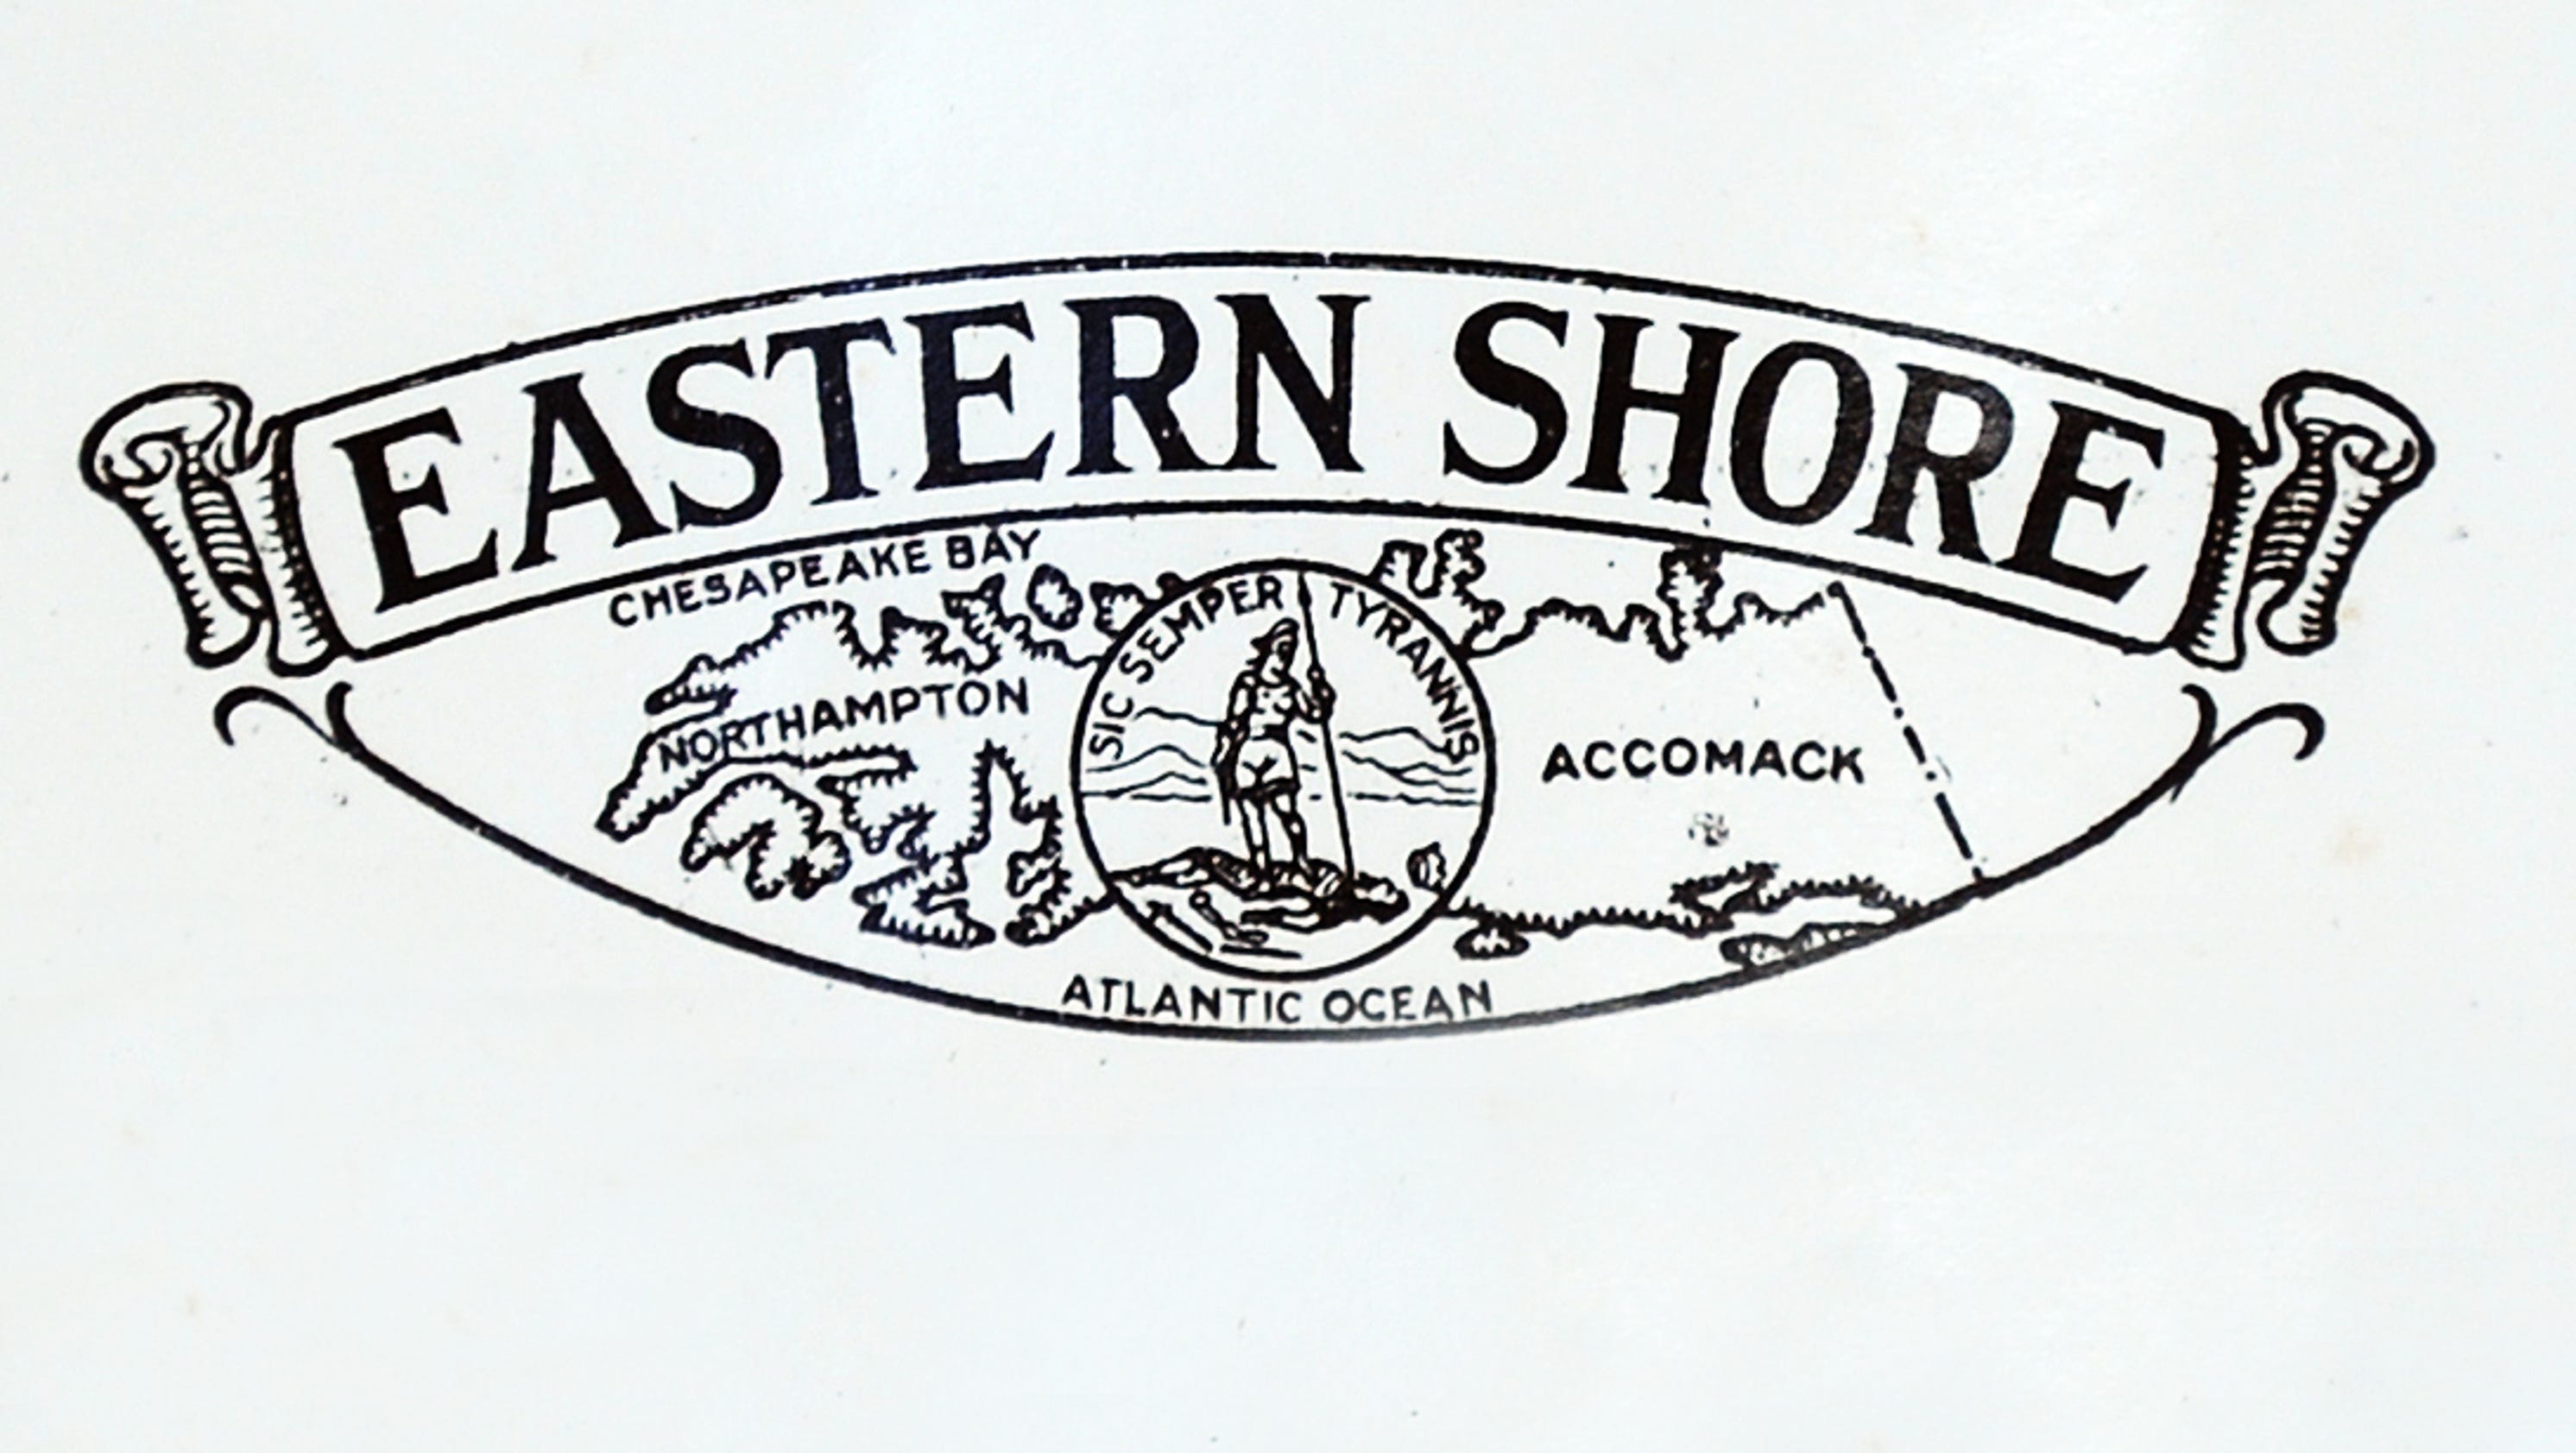 Eastern shore news obituaries for june 18 izmirmasajfo Image collections